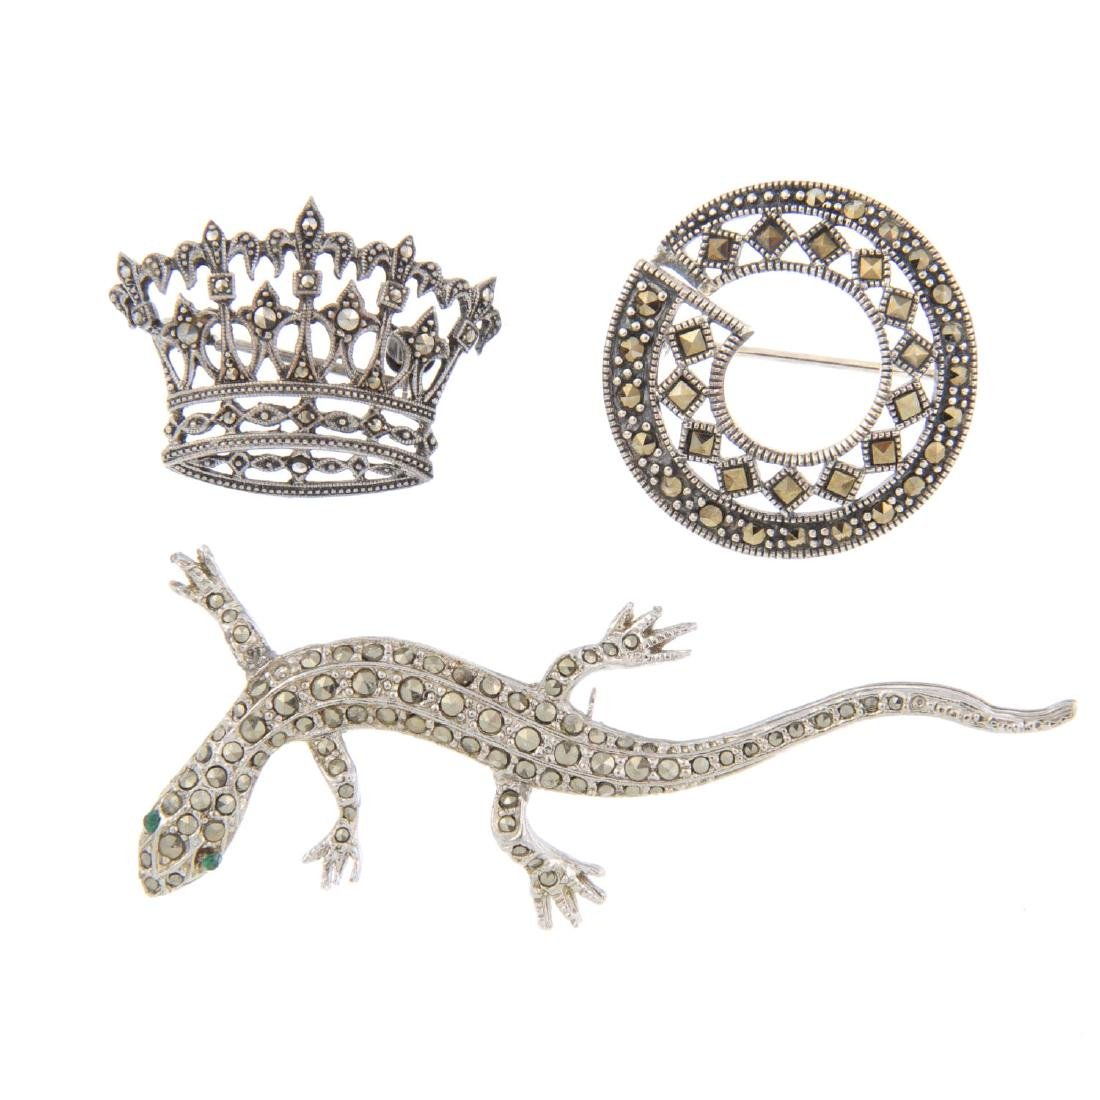 A selection of marcasite jewellery. To include an